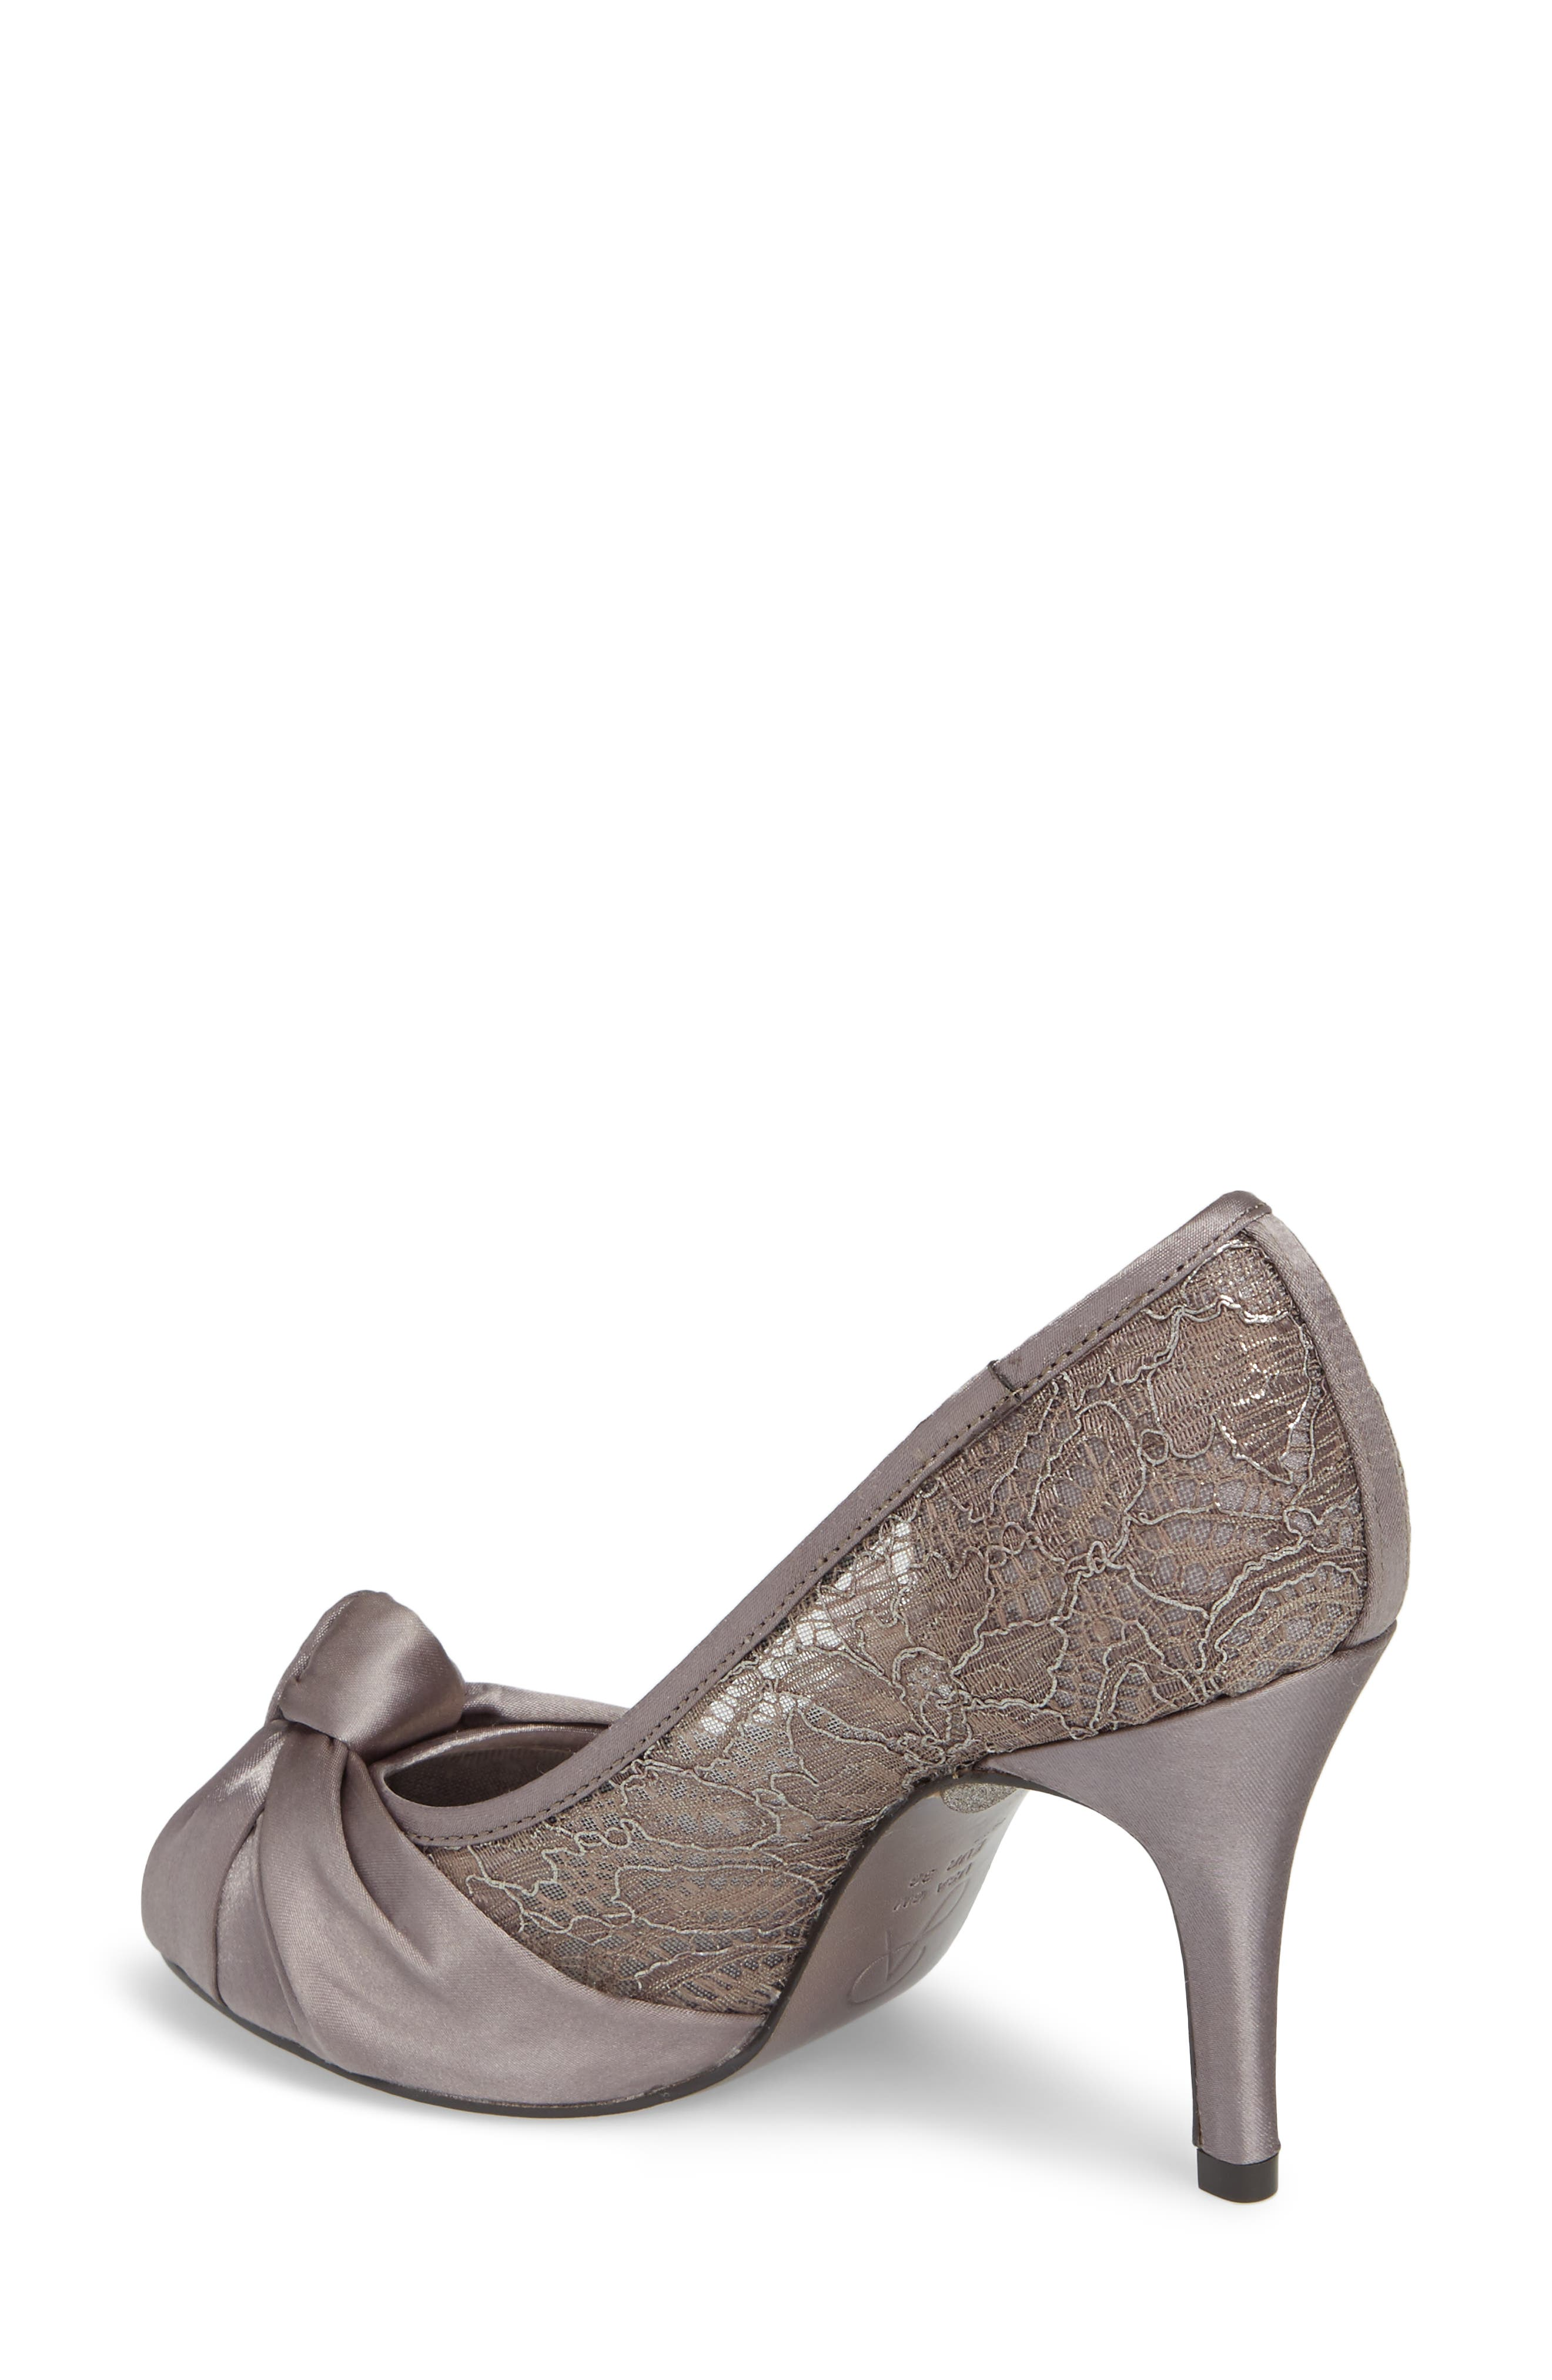 Francesca Knotted Peep Toe Pump,                             Alternate thumbnail 2, color,                             Steel Satin